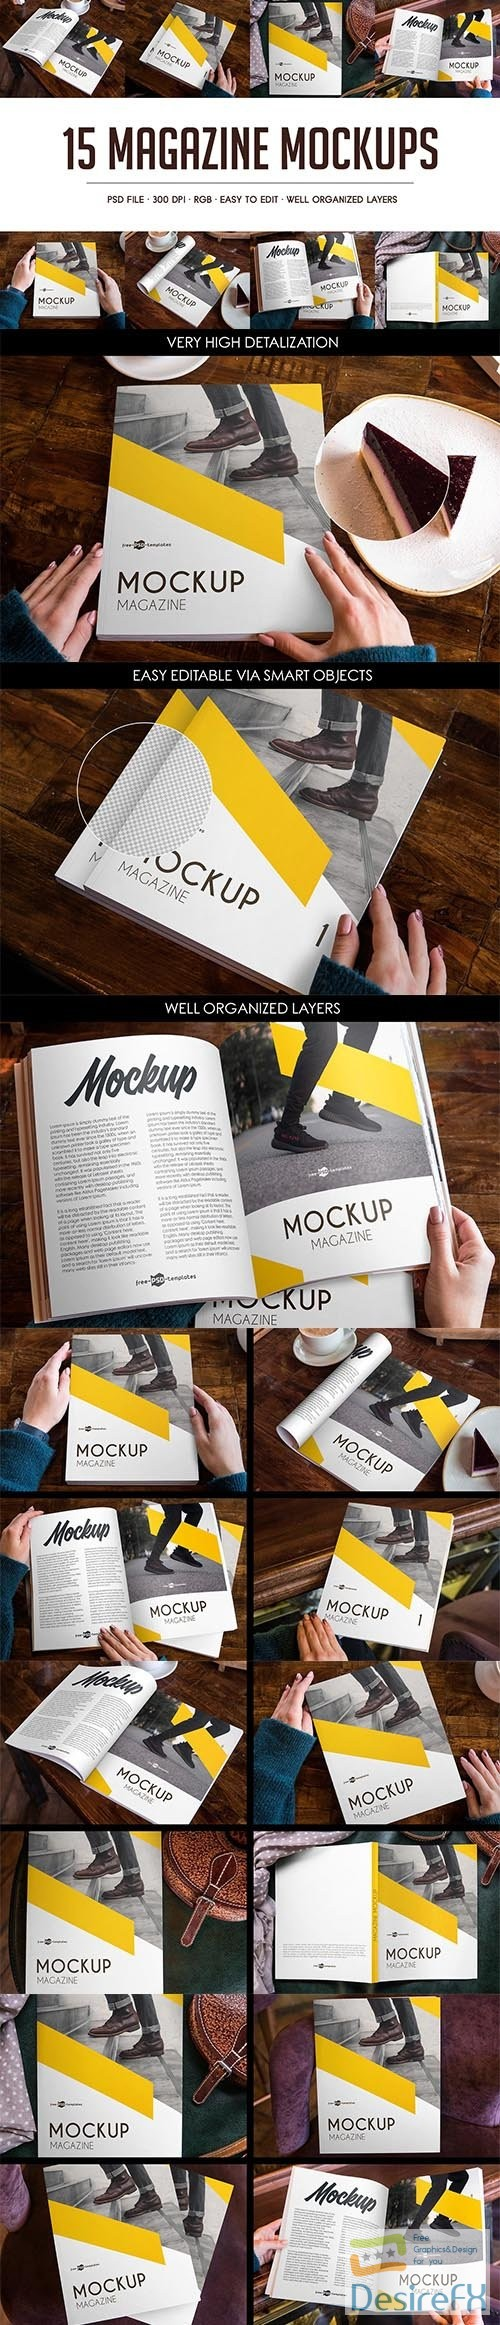 mock-up - CreativeMarket - 15 Magazine MockUps 3591633